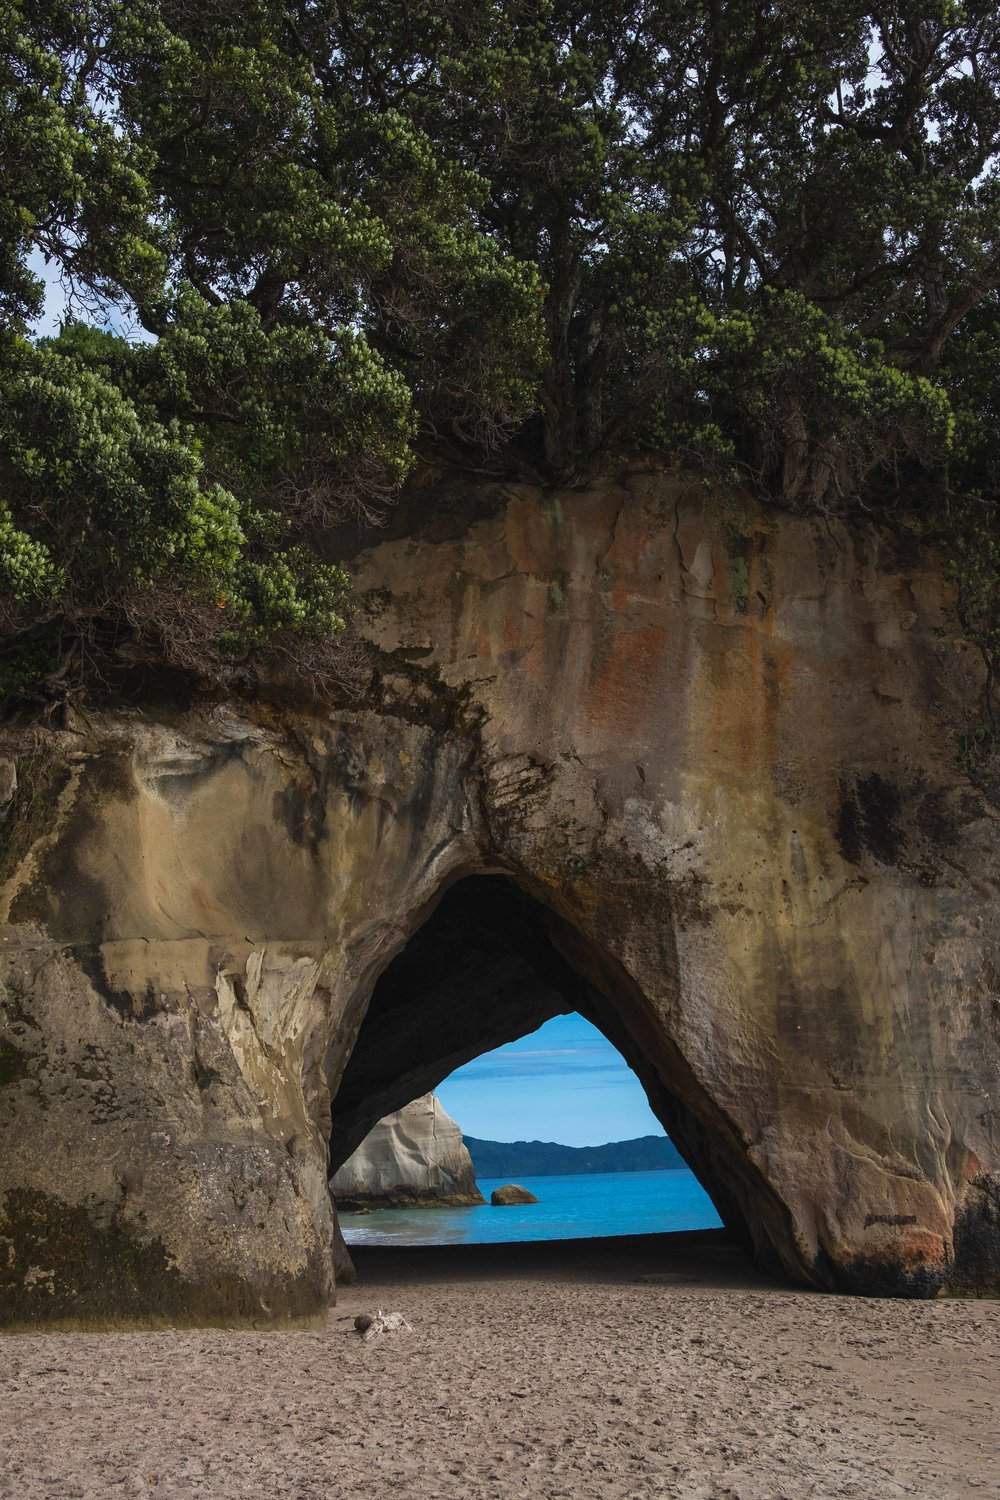 The Cathedral Cove! This is where Peter, Susan, Lucy, and Edmund appear!